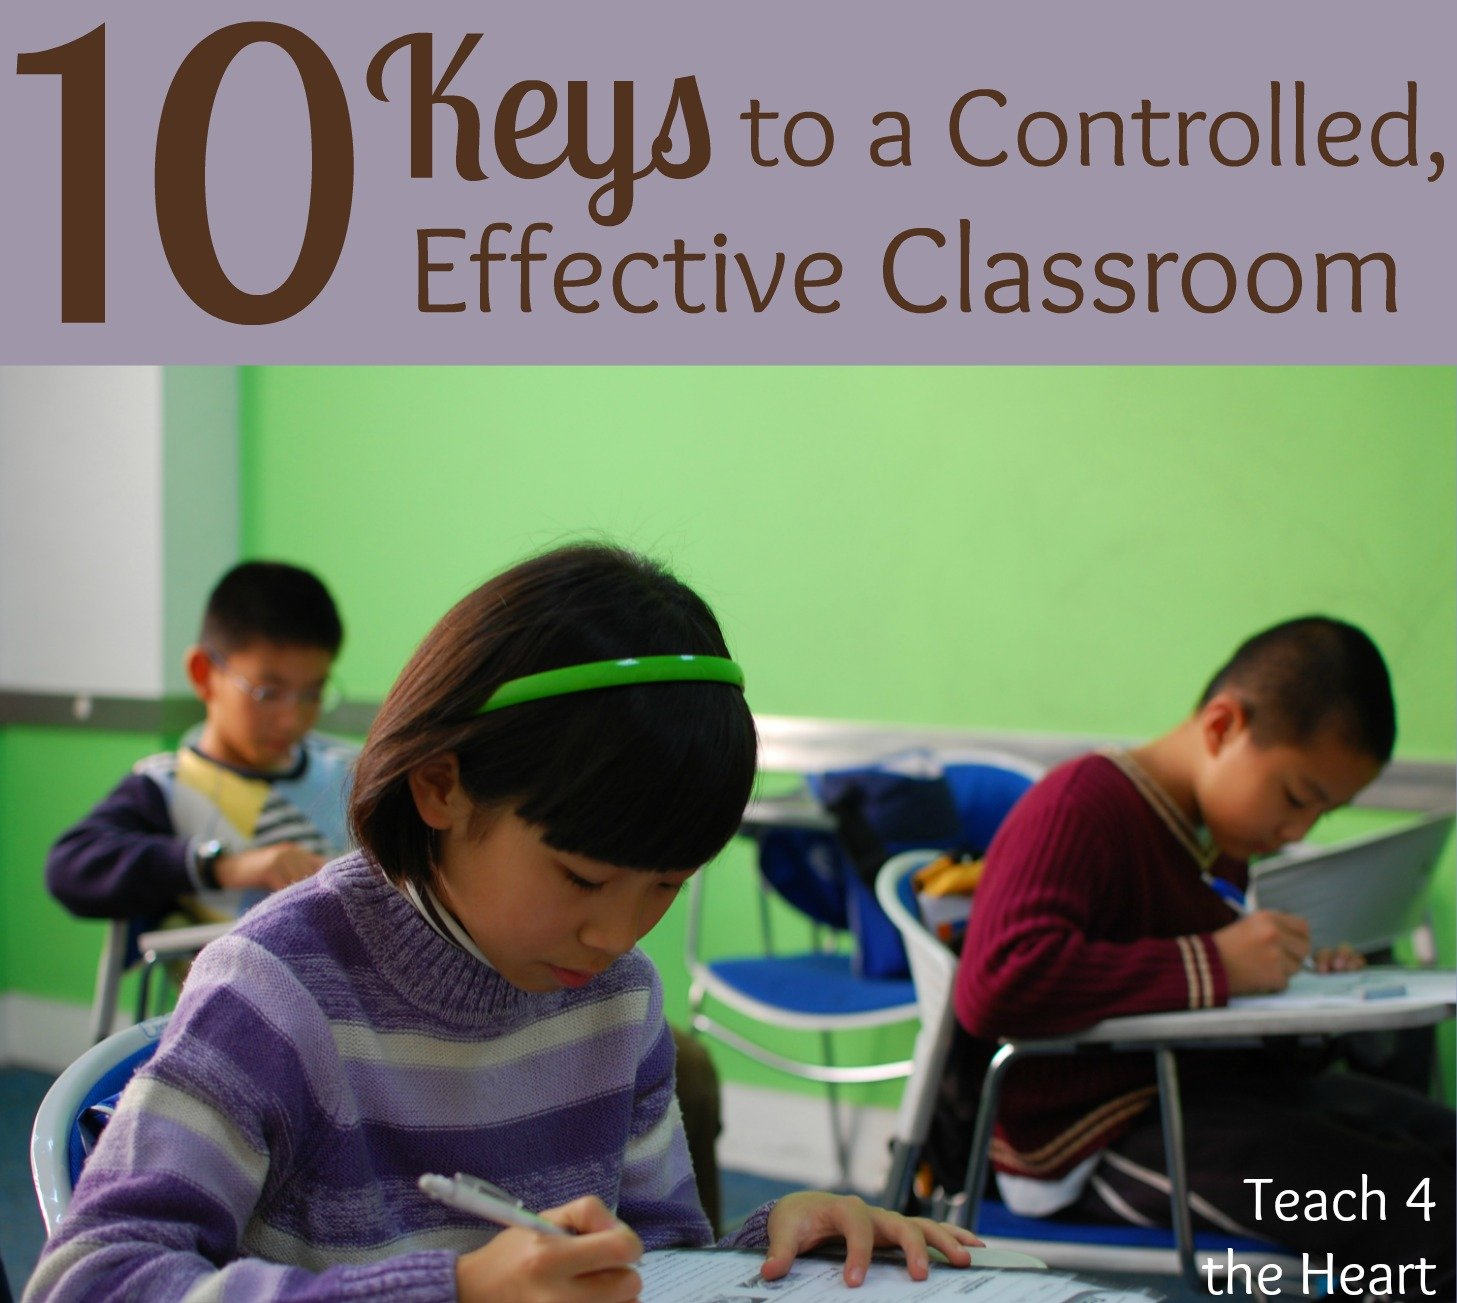 10 Keys to a Controlled, Effective Classroom